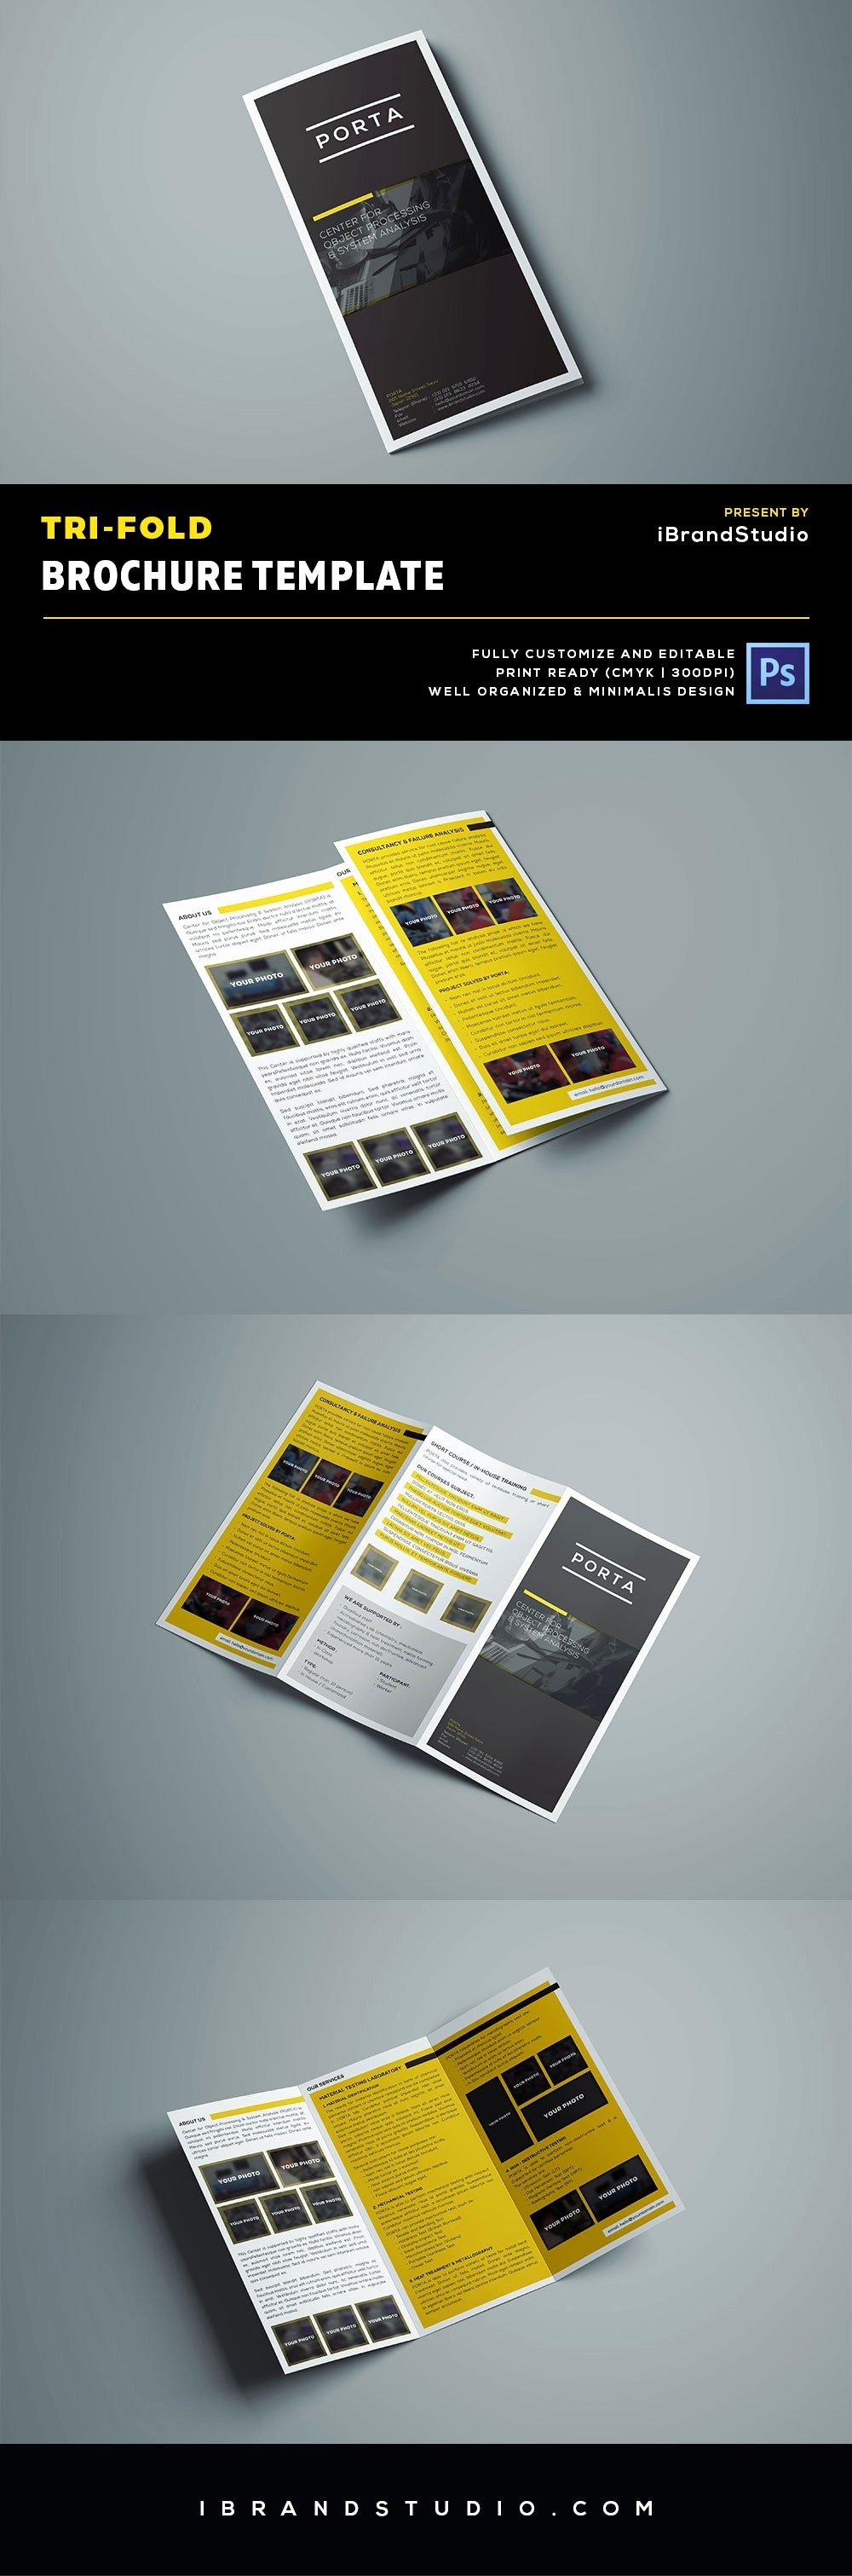 Tri Fold Brochure Template Shop